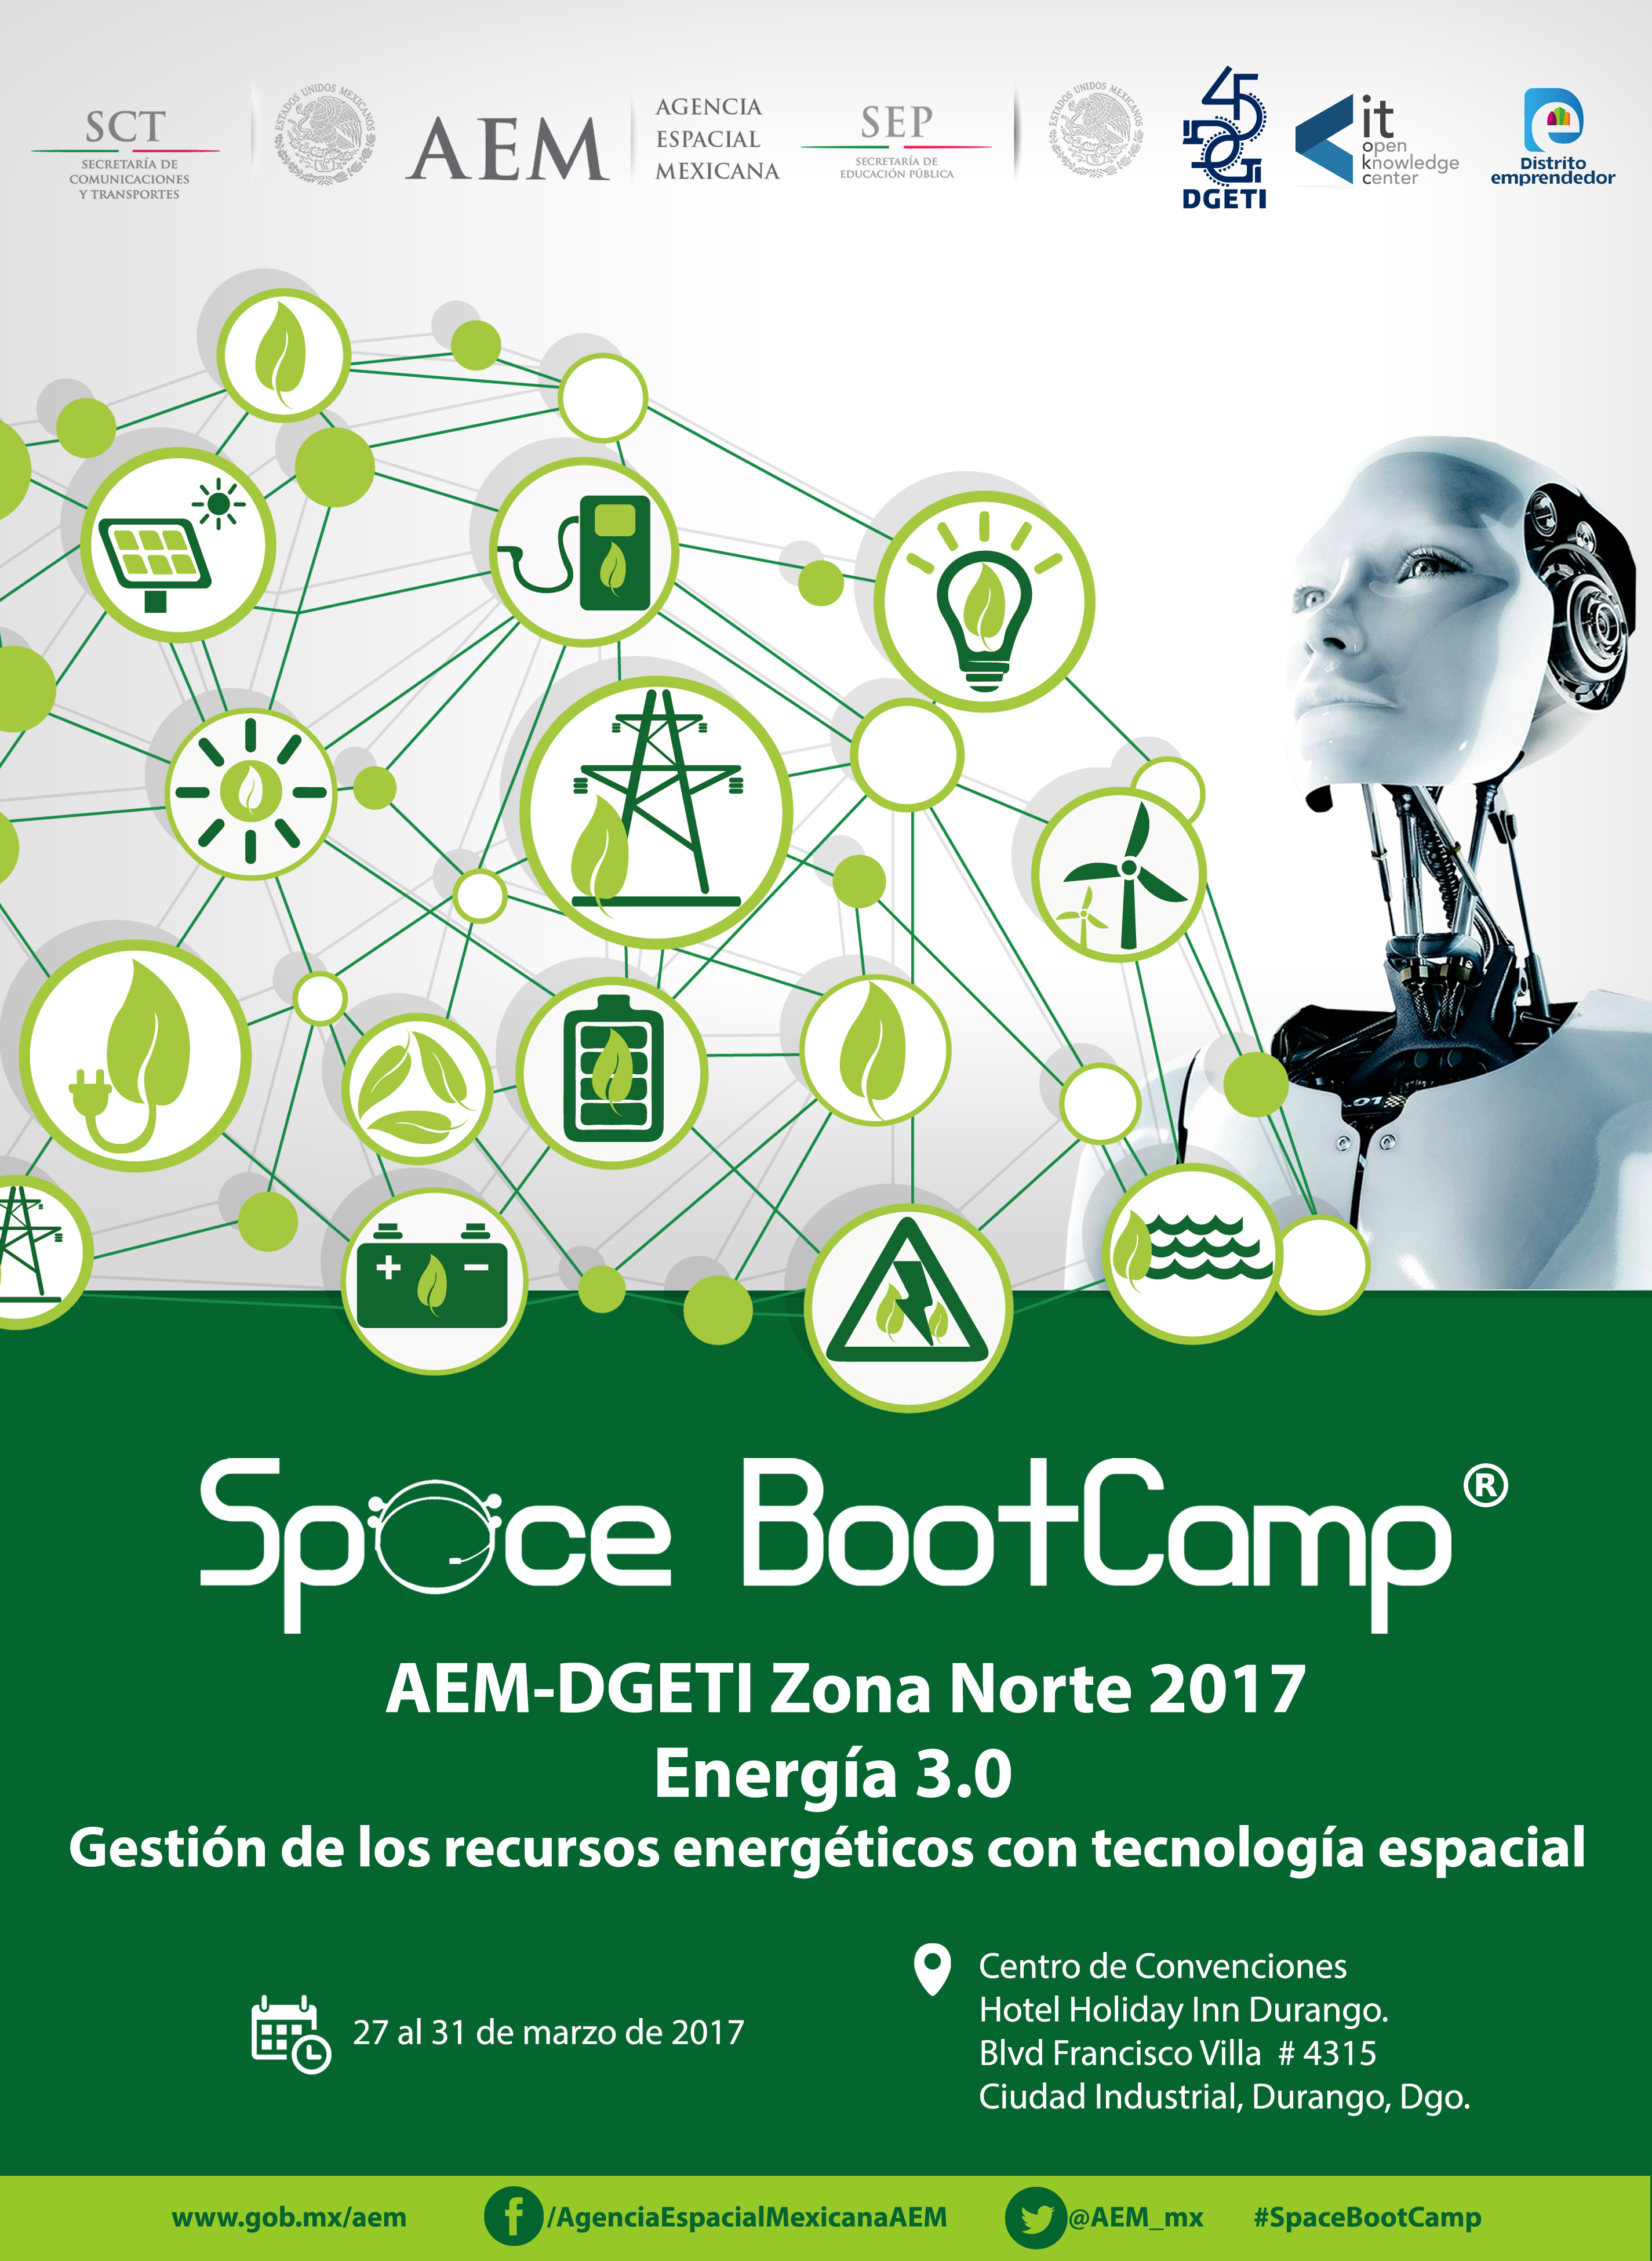 Anexo C-077-2017(Space BootCamp 2017) Cartel